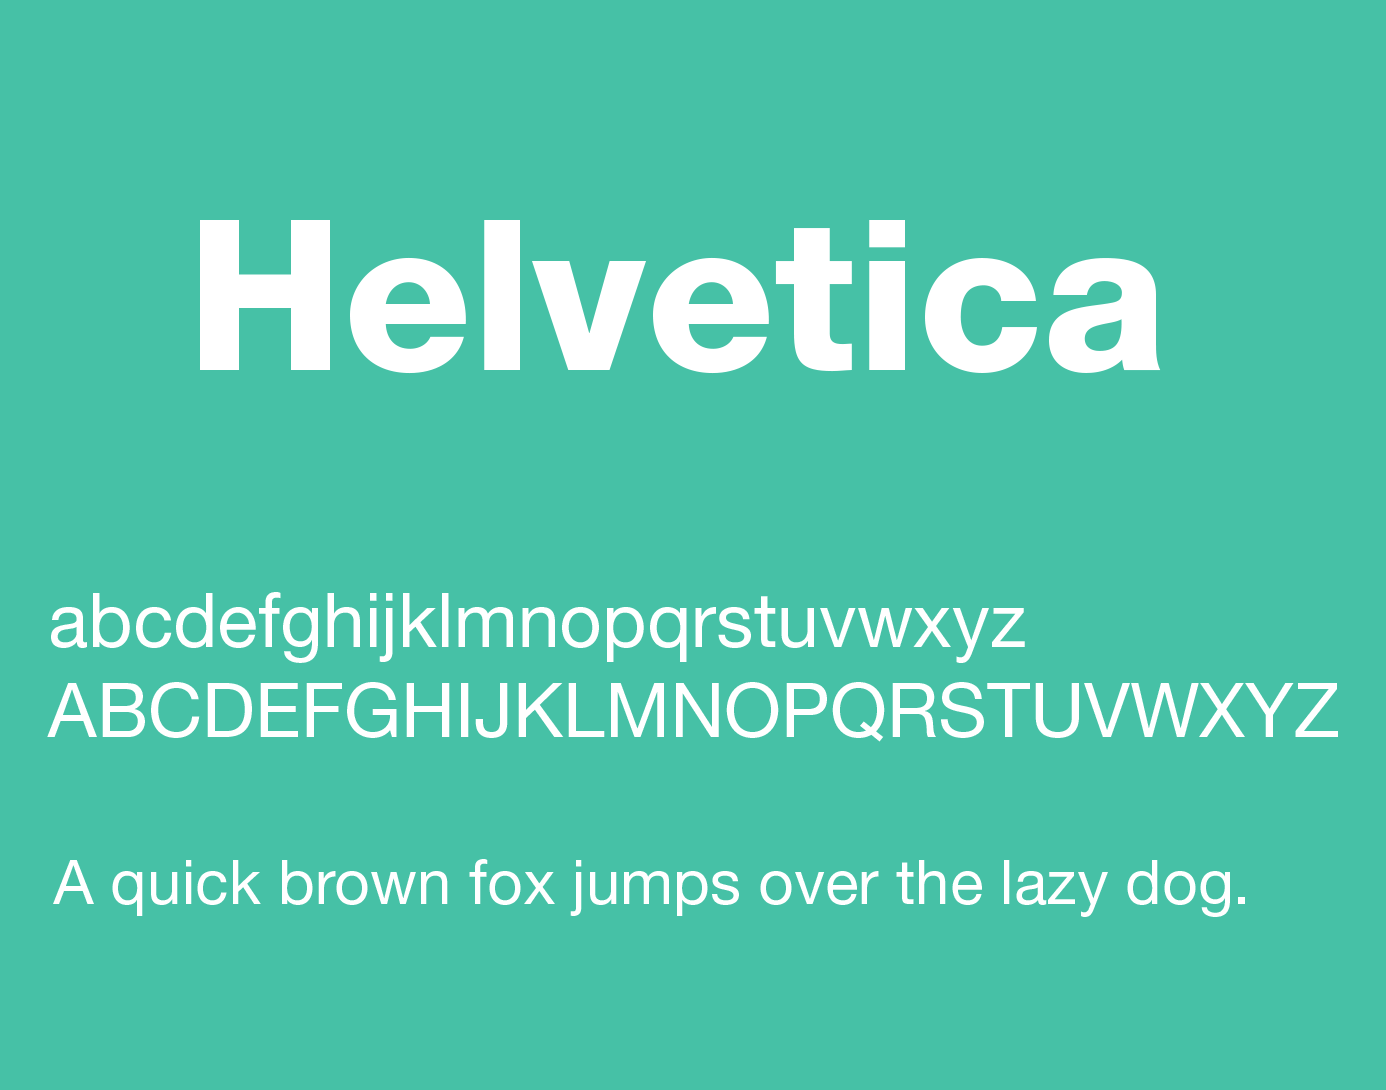 helvetica fonts free download for windows 7